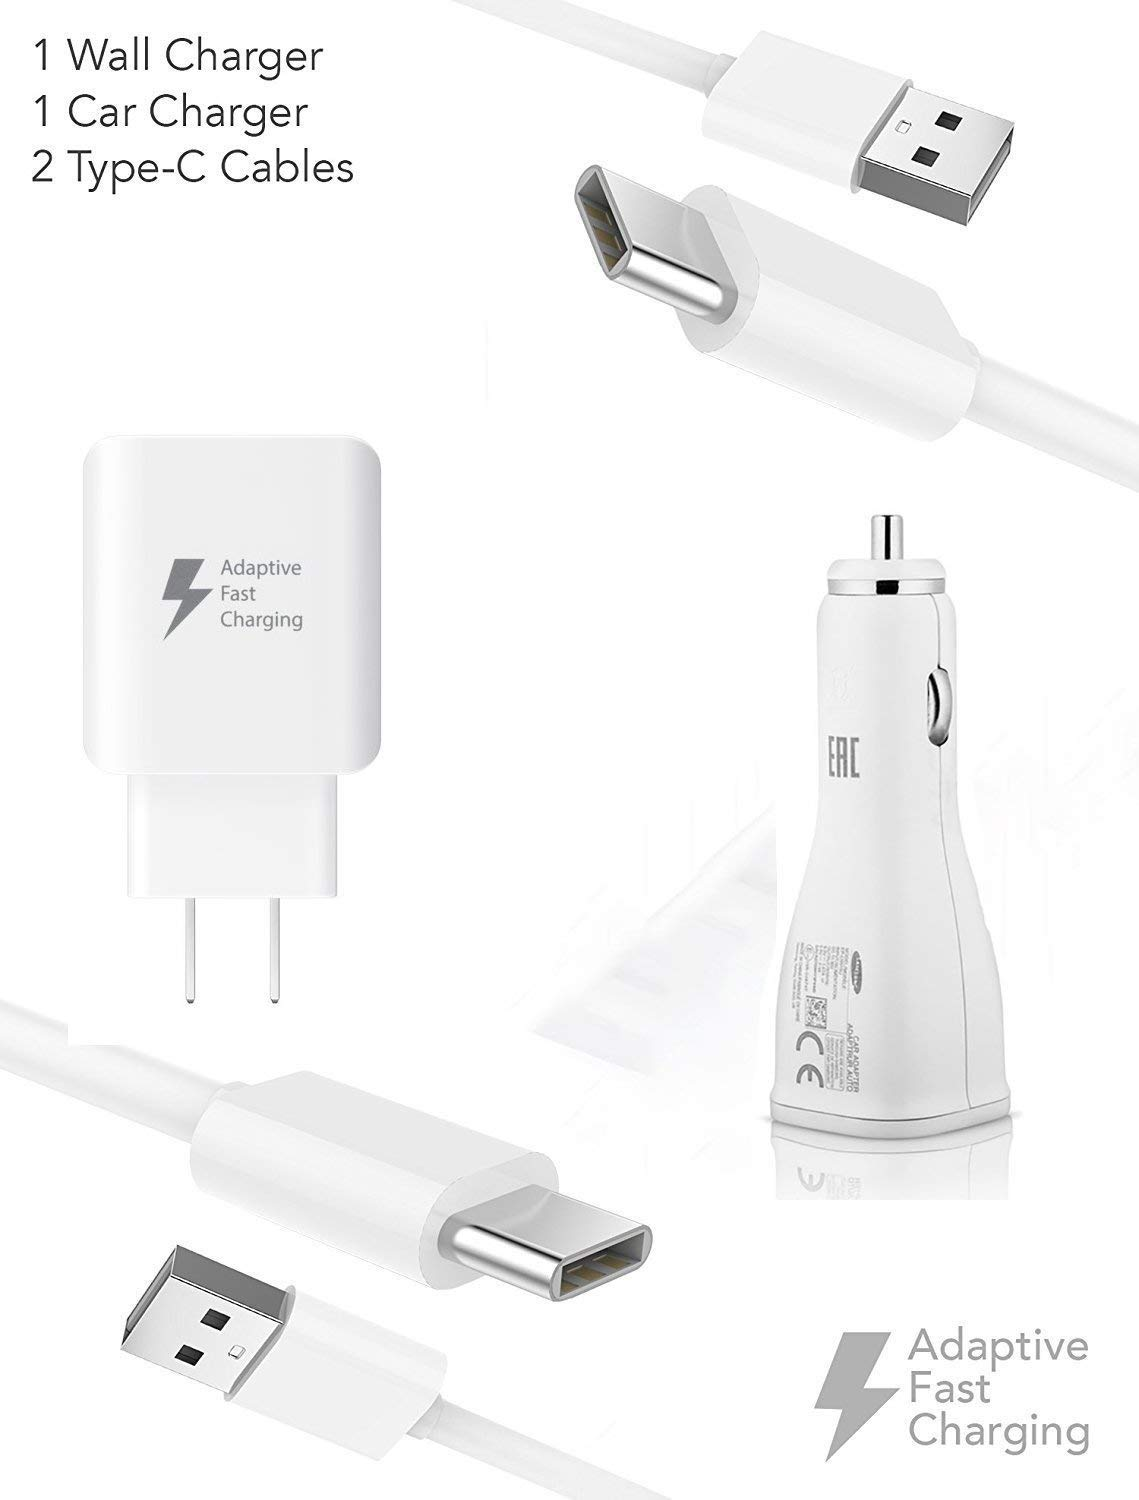 Quick Adaptive Turbo 18W Wall & Car Dual-Port USB Kit Works for ZTE Axon 9 Pro with (2) USB Type-C Cables!